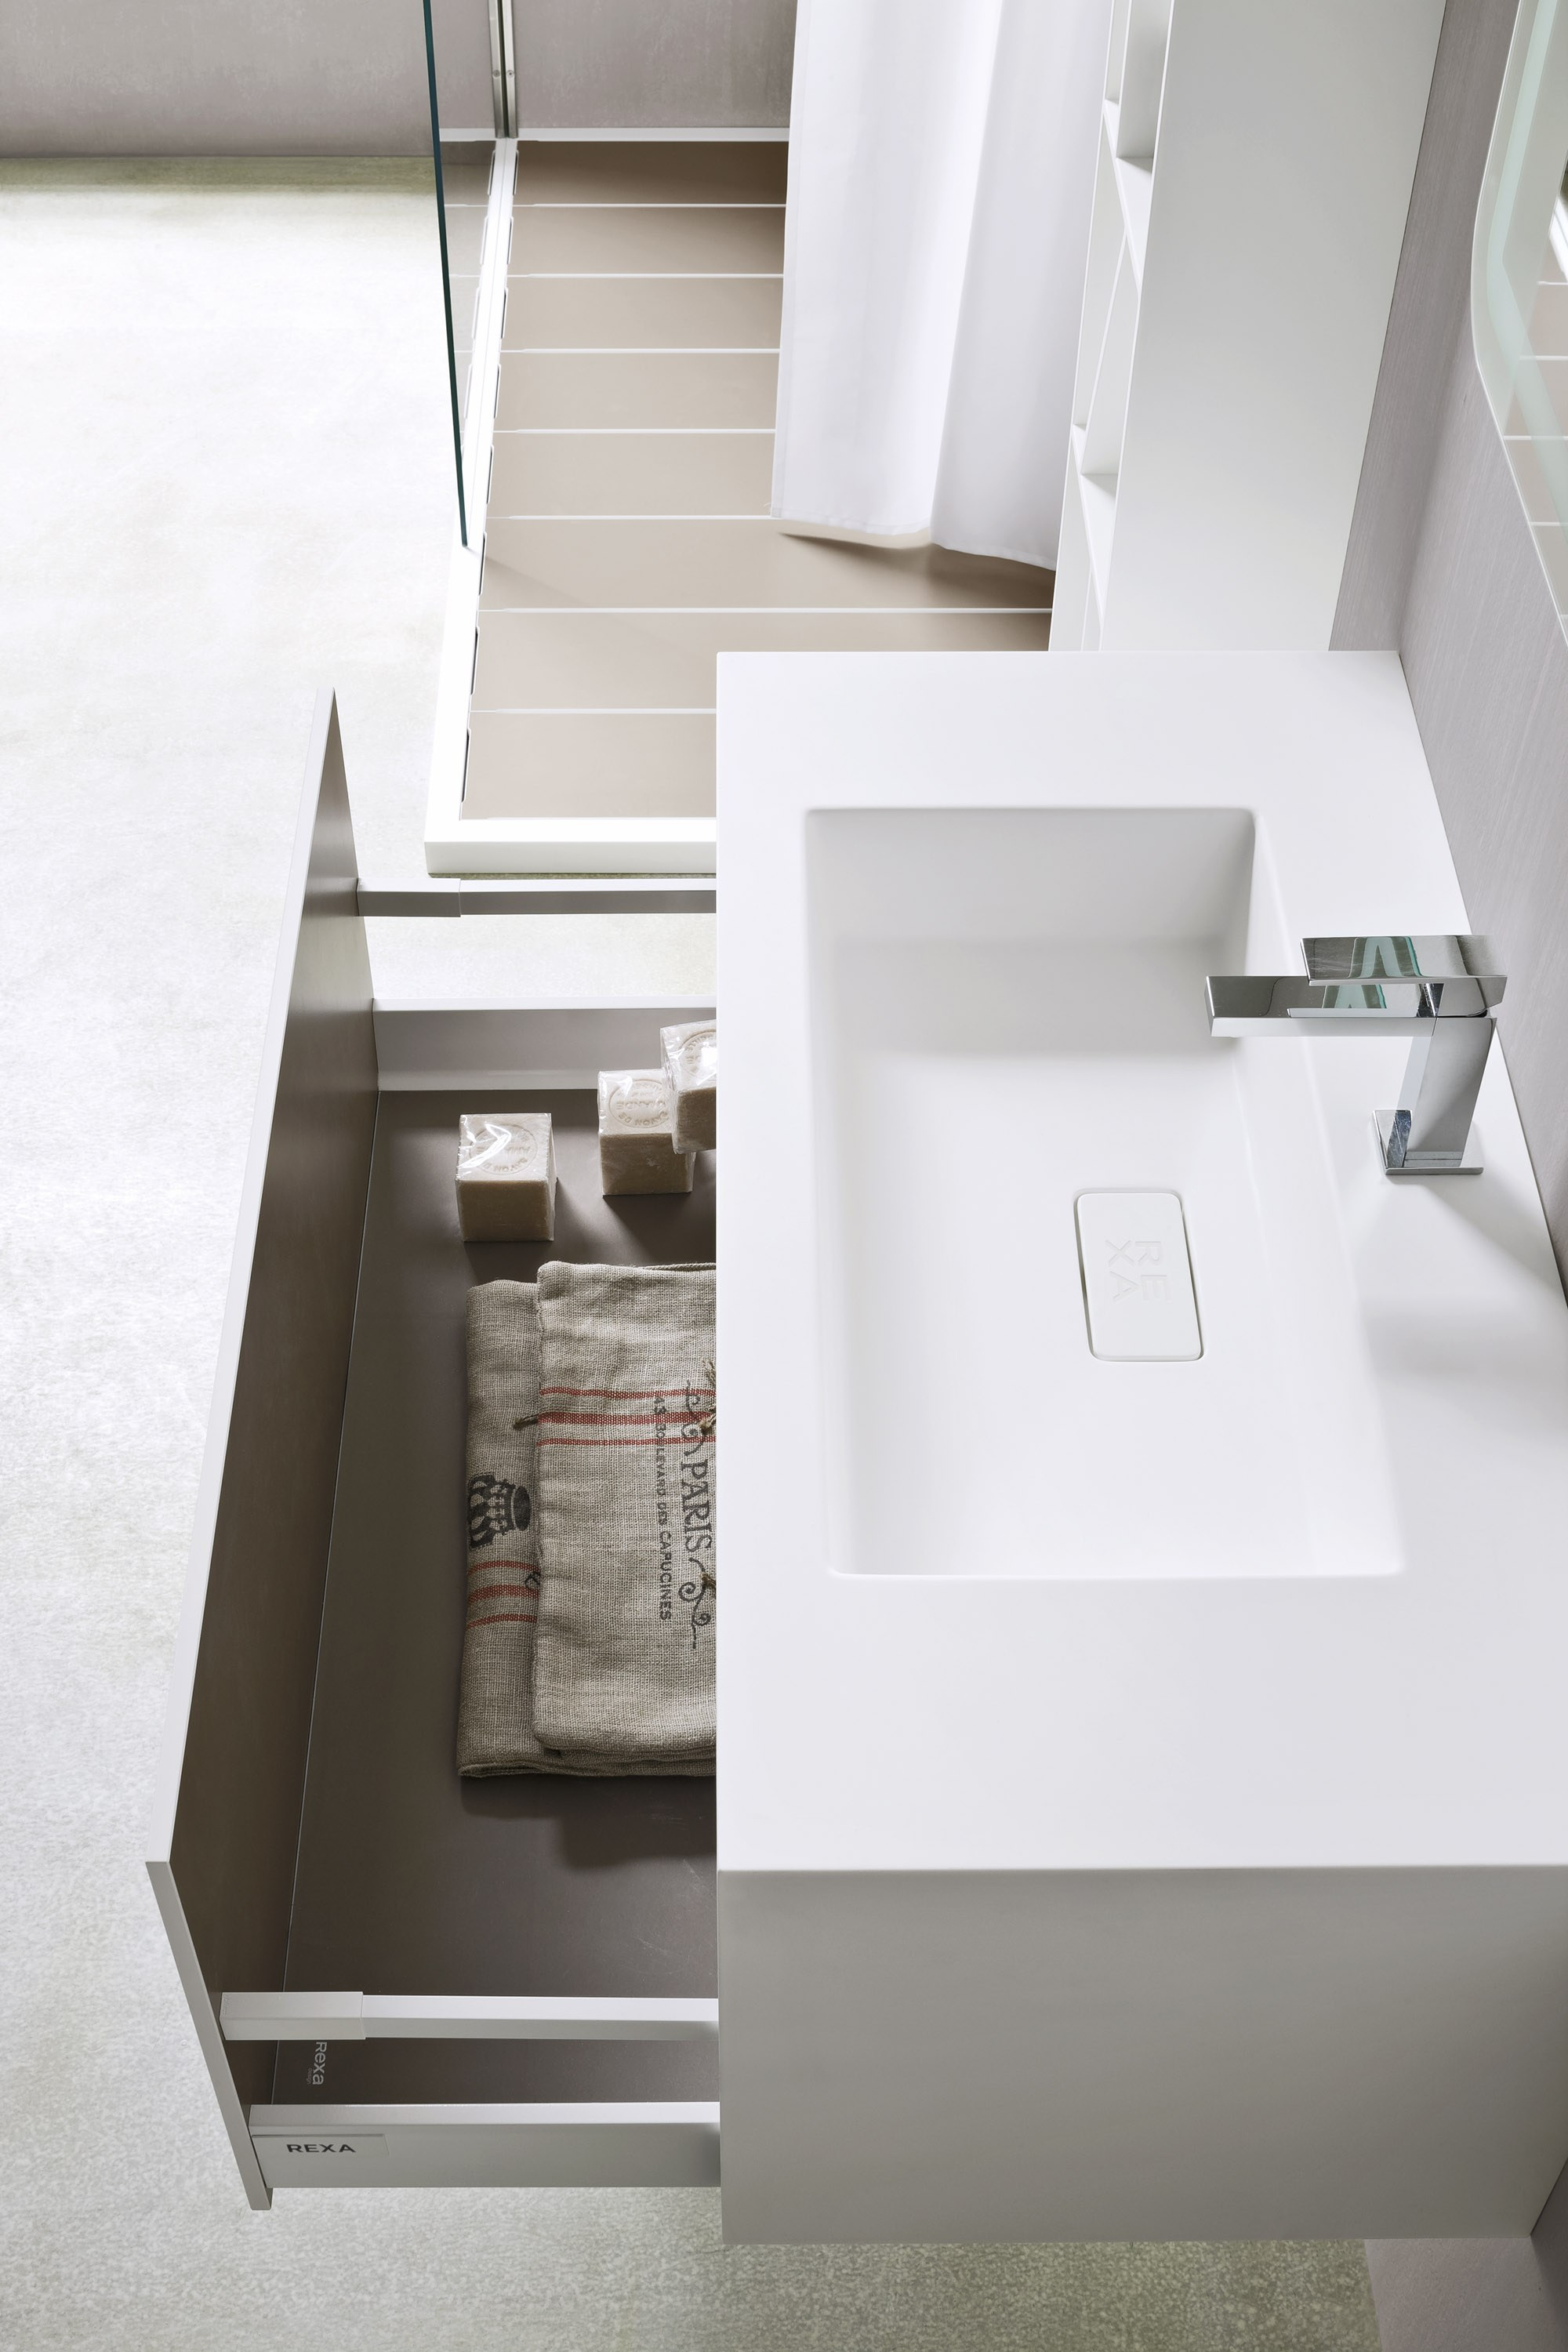 Sanitaires Salle Bain Luxembourg Galerie Dinspiration Pour La - Sanitaires salle bain luxembourg